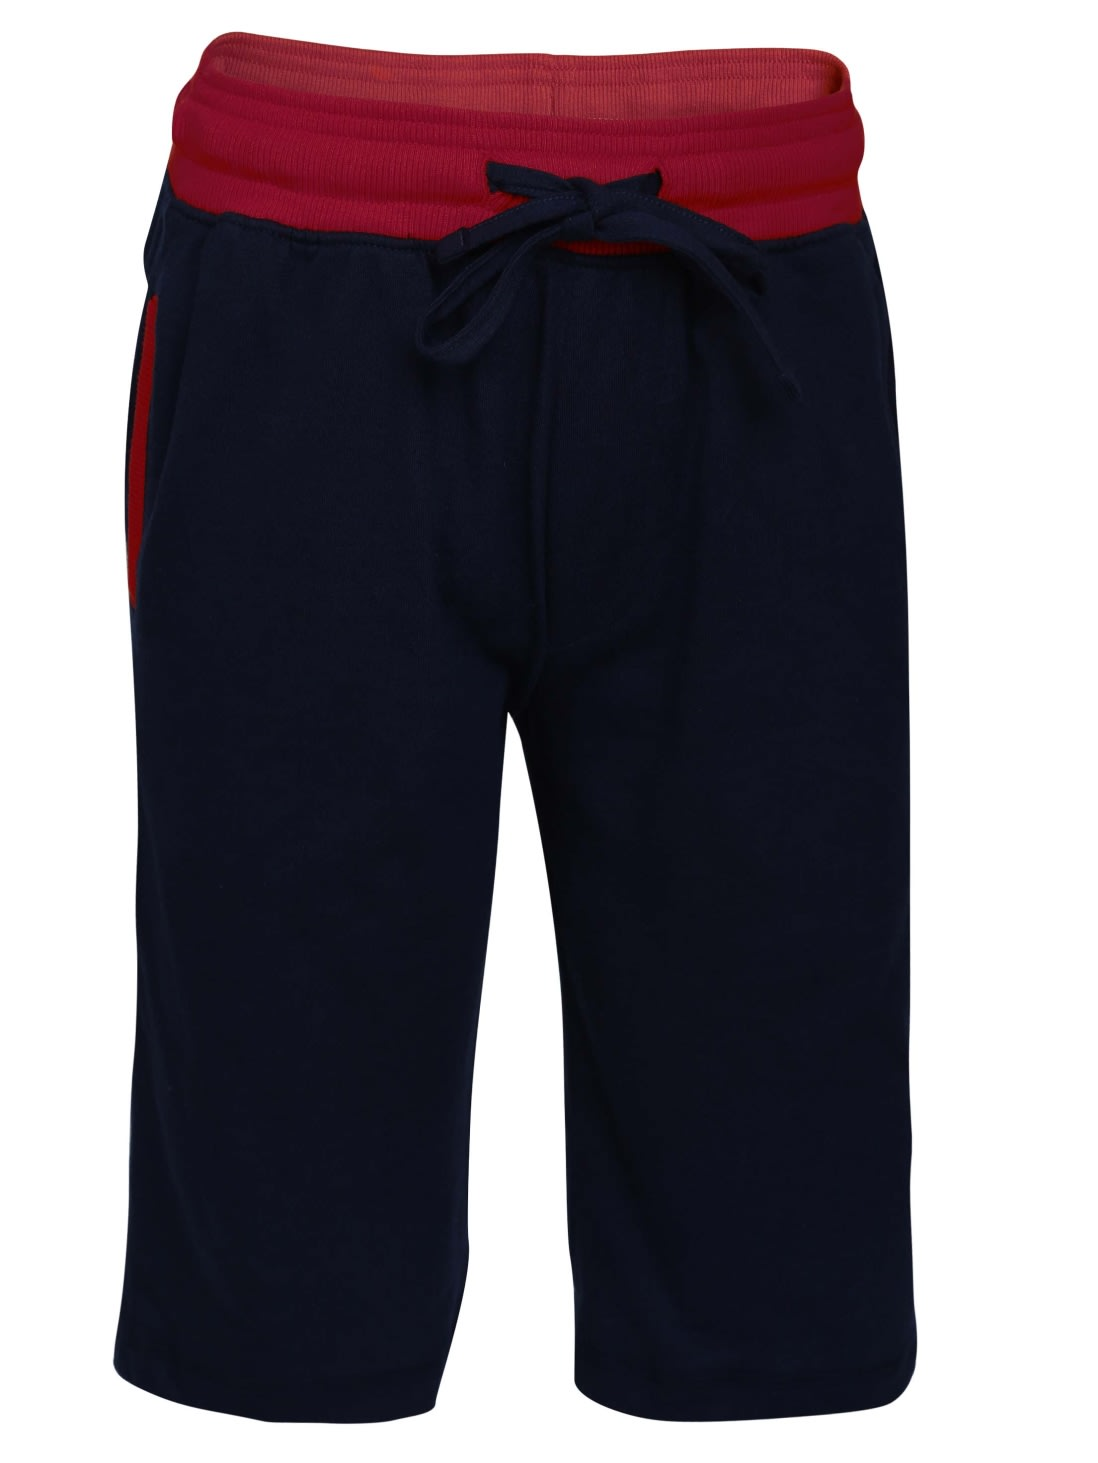 Navy & Team Red Boys Knit Shorts